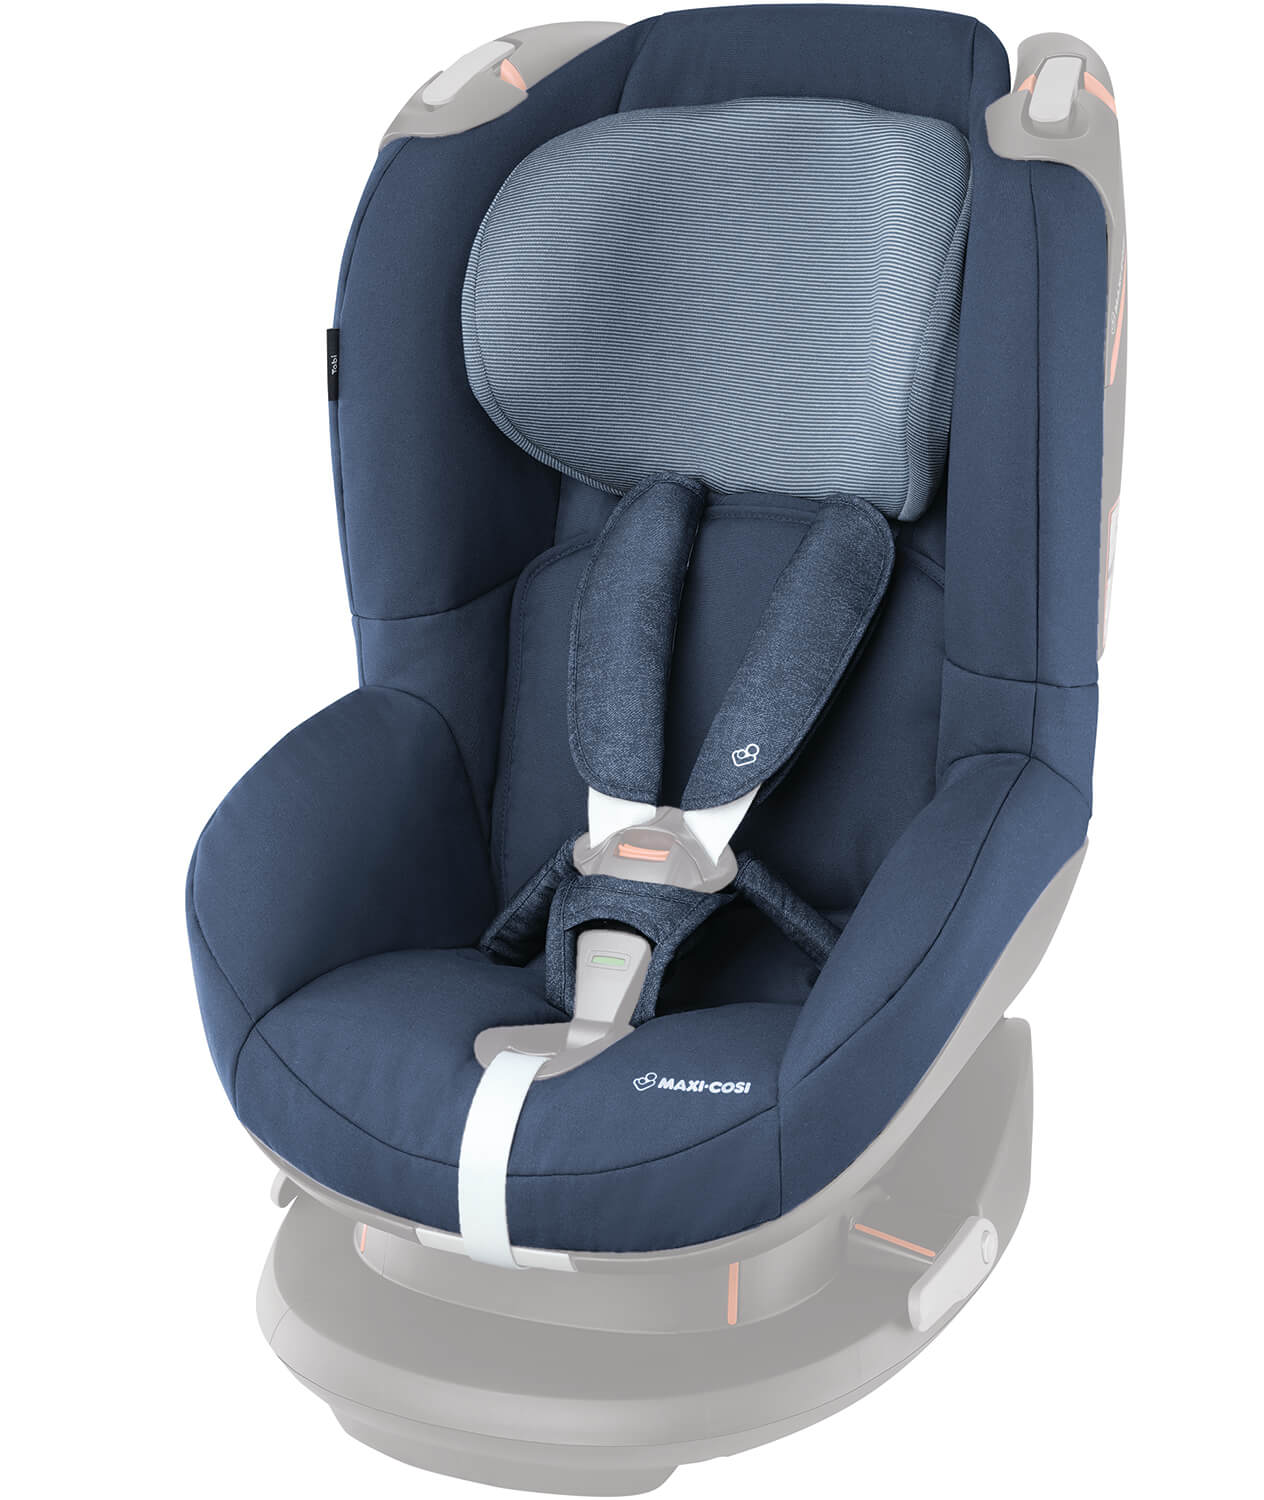 maxi cosi tobi seat cover nomad blue. Black Bedroom Furniture Sets. Home Design Ideas